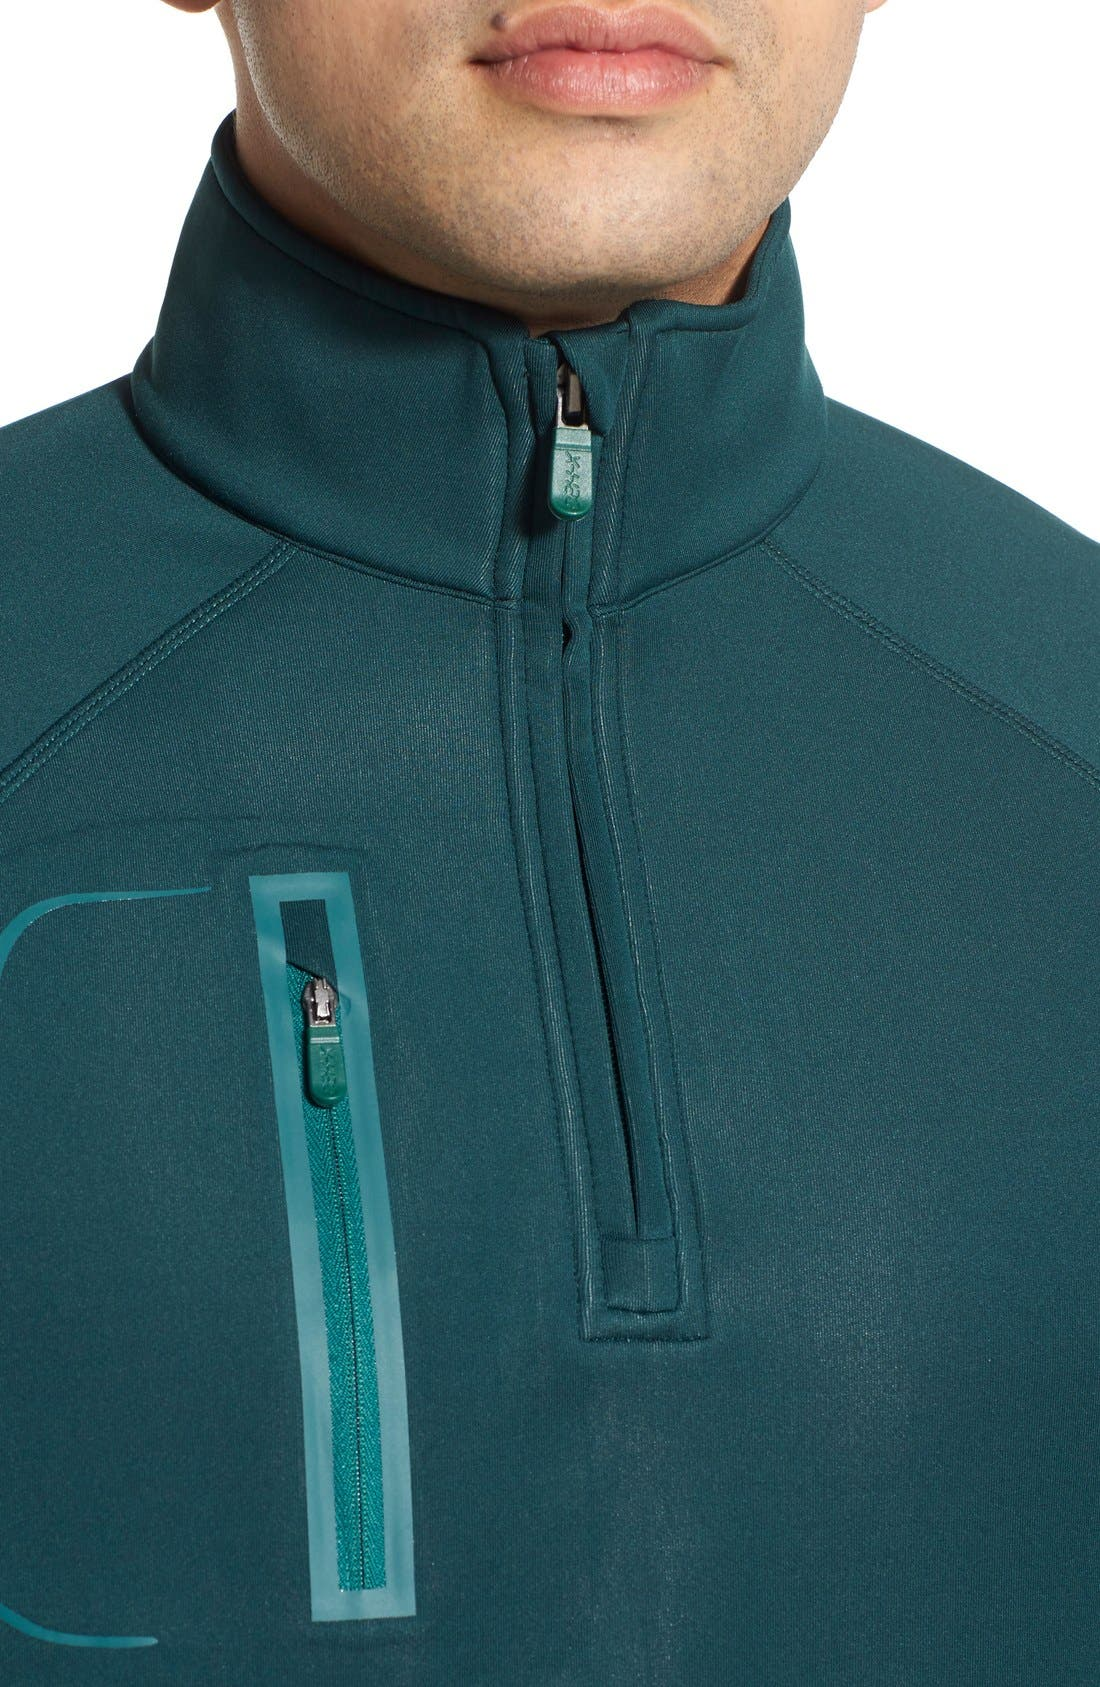 XH2O Crawford Stretch Quarter Zip Golf Pullover,                             Alternate thumbnail 46, color,